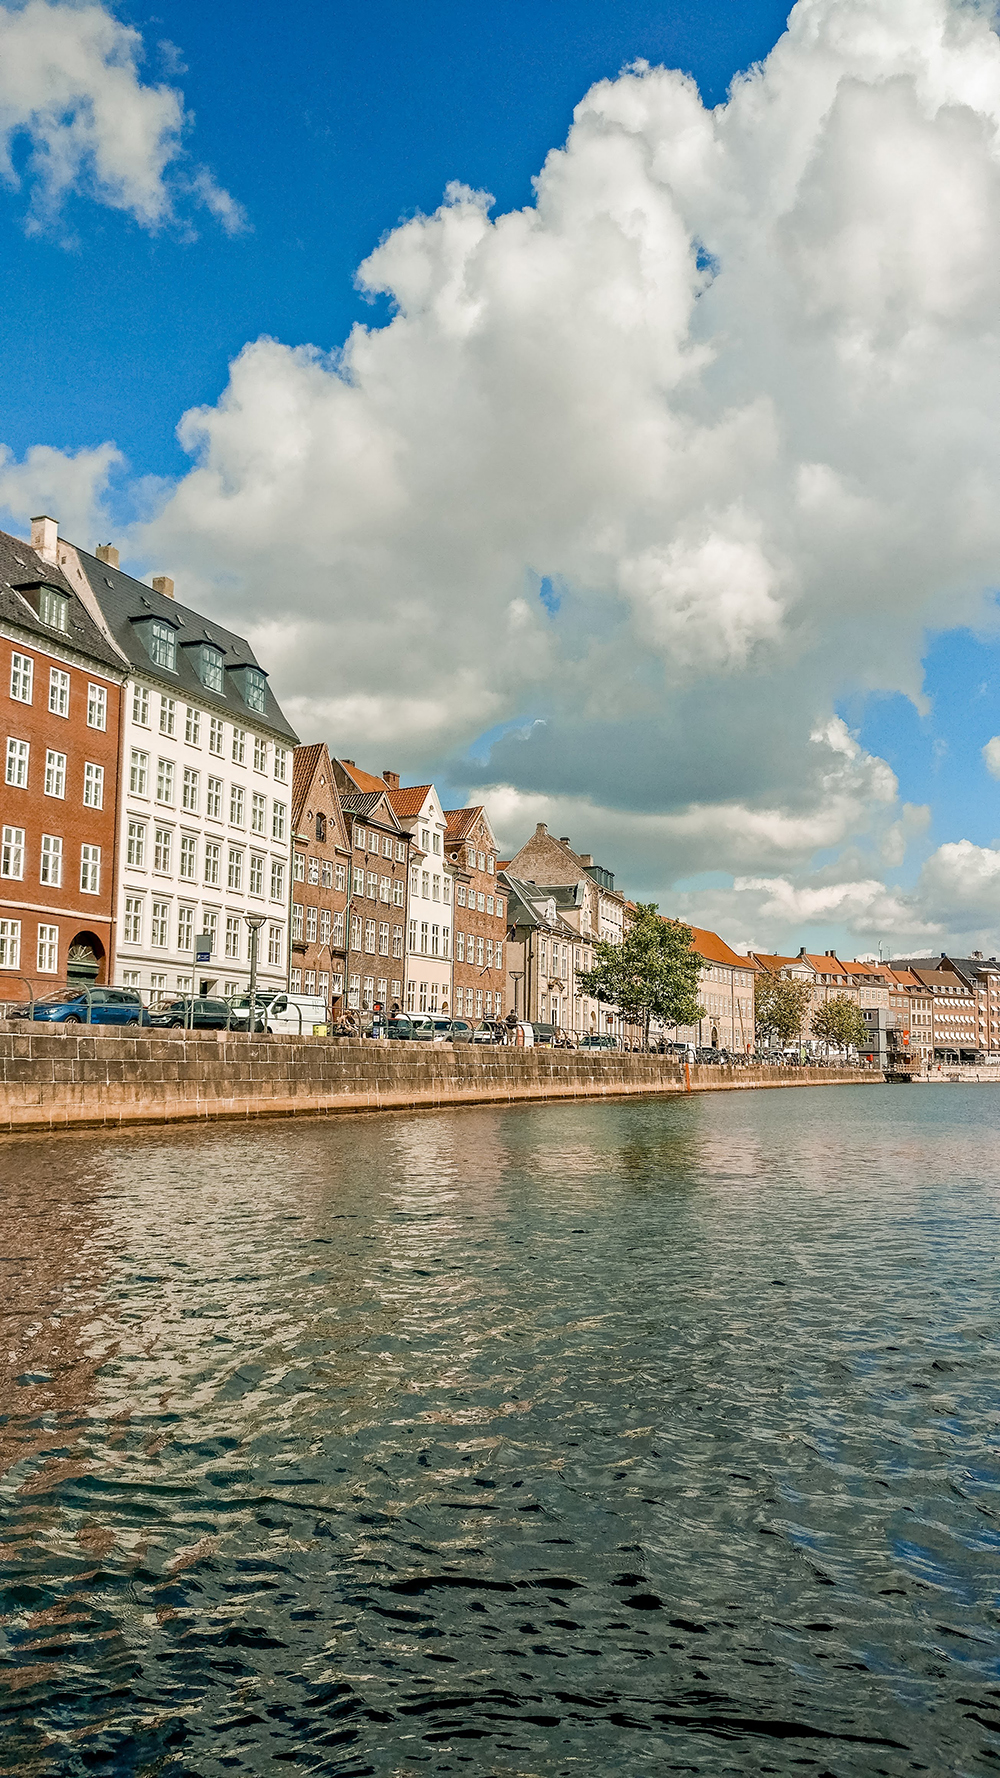 One-hour guided canal tour - Copenhagen 3-day travel itinerary | Aliz's Wonderland